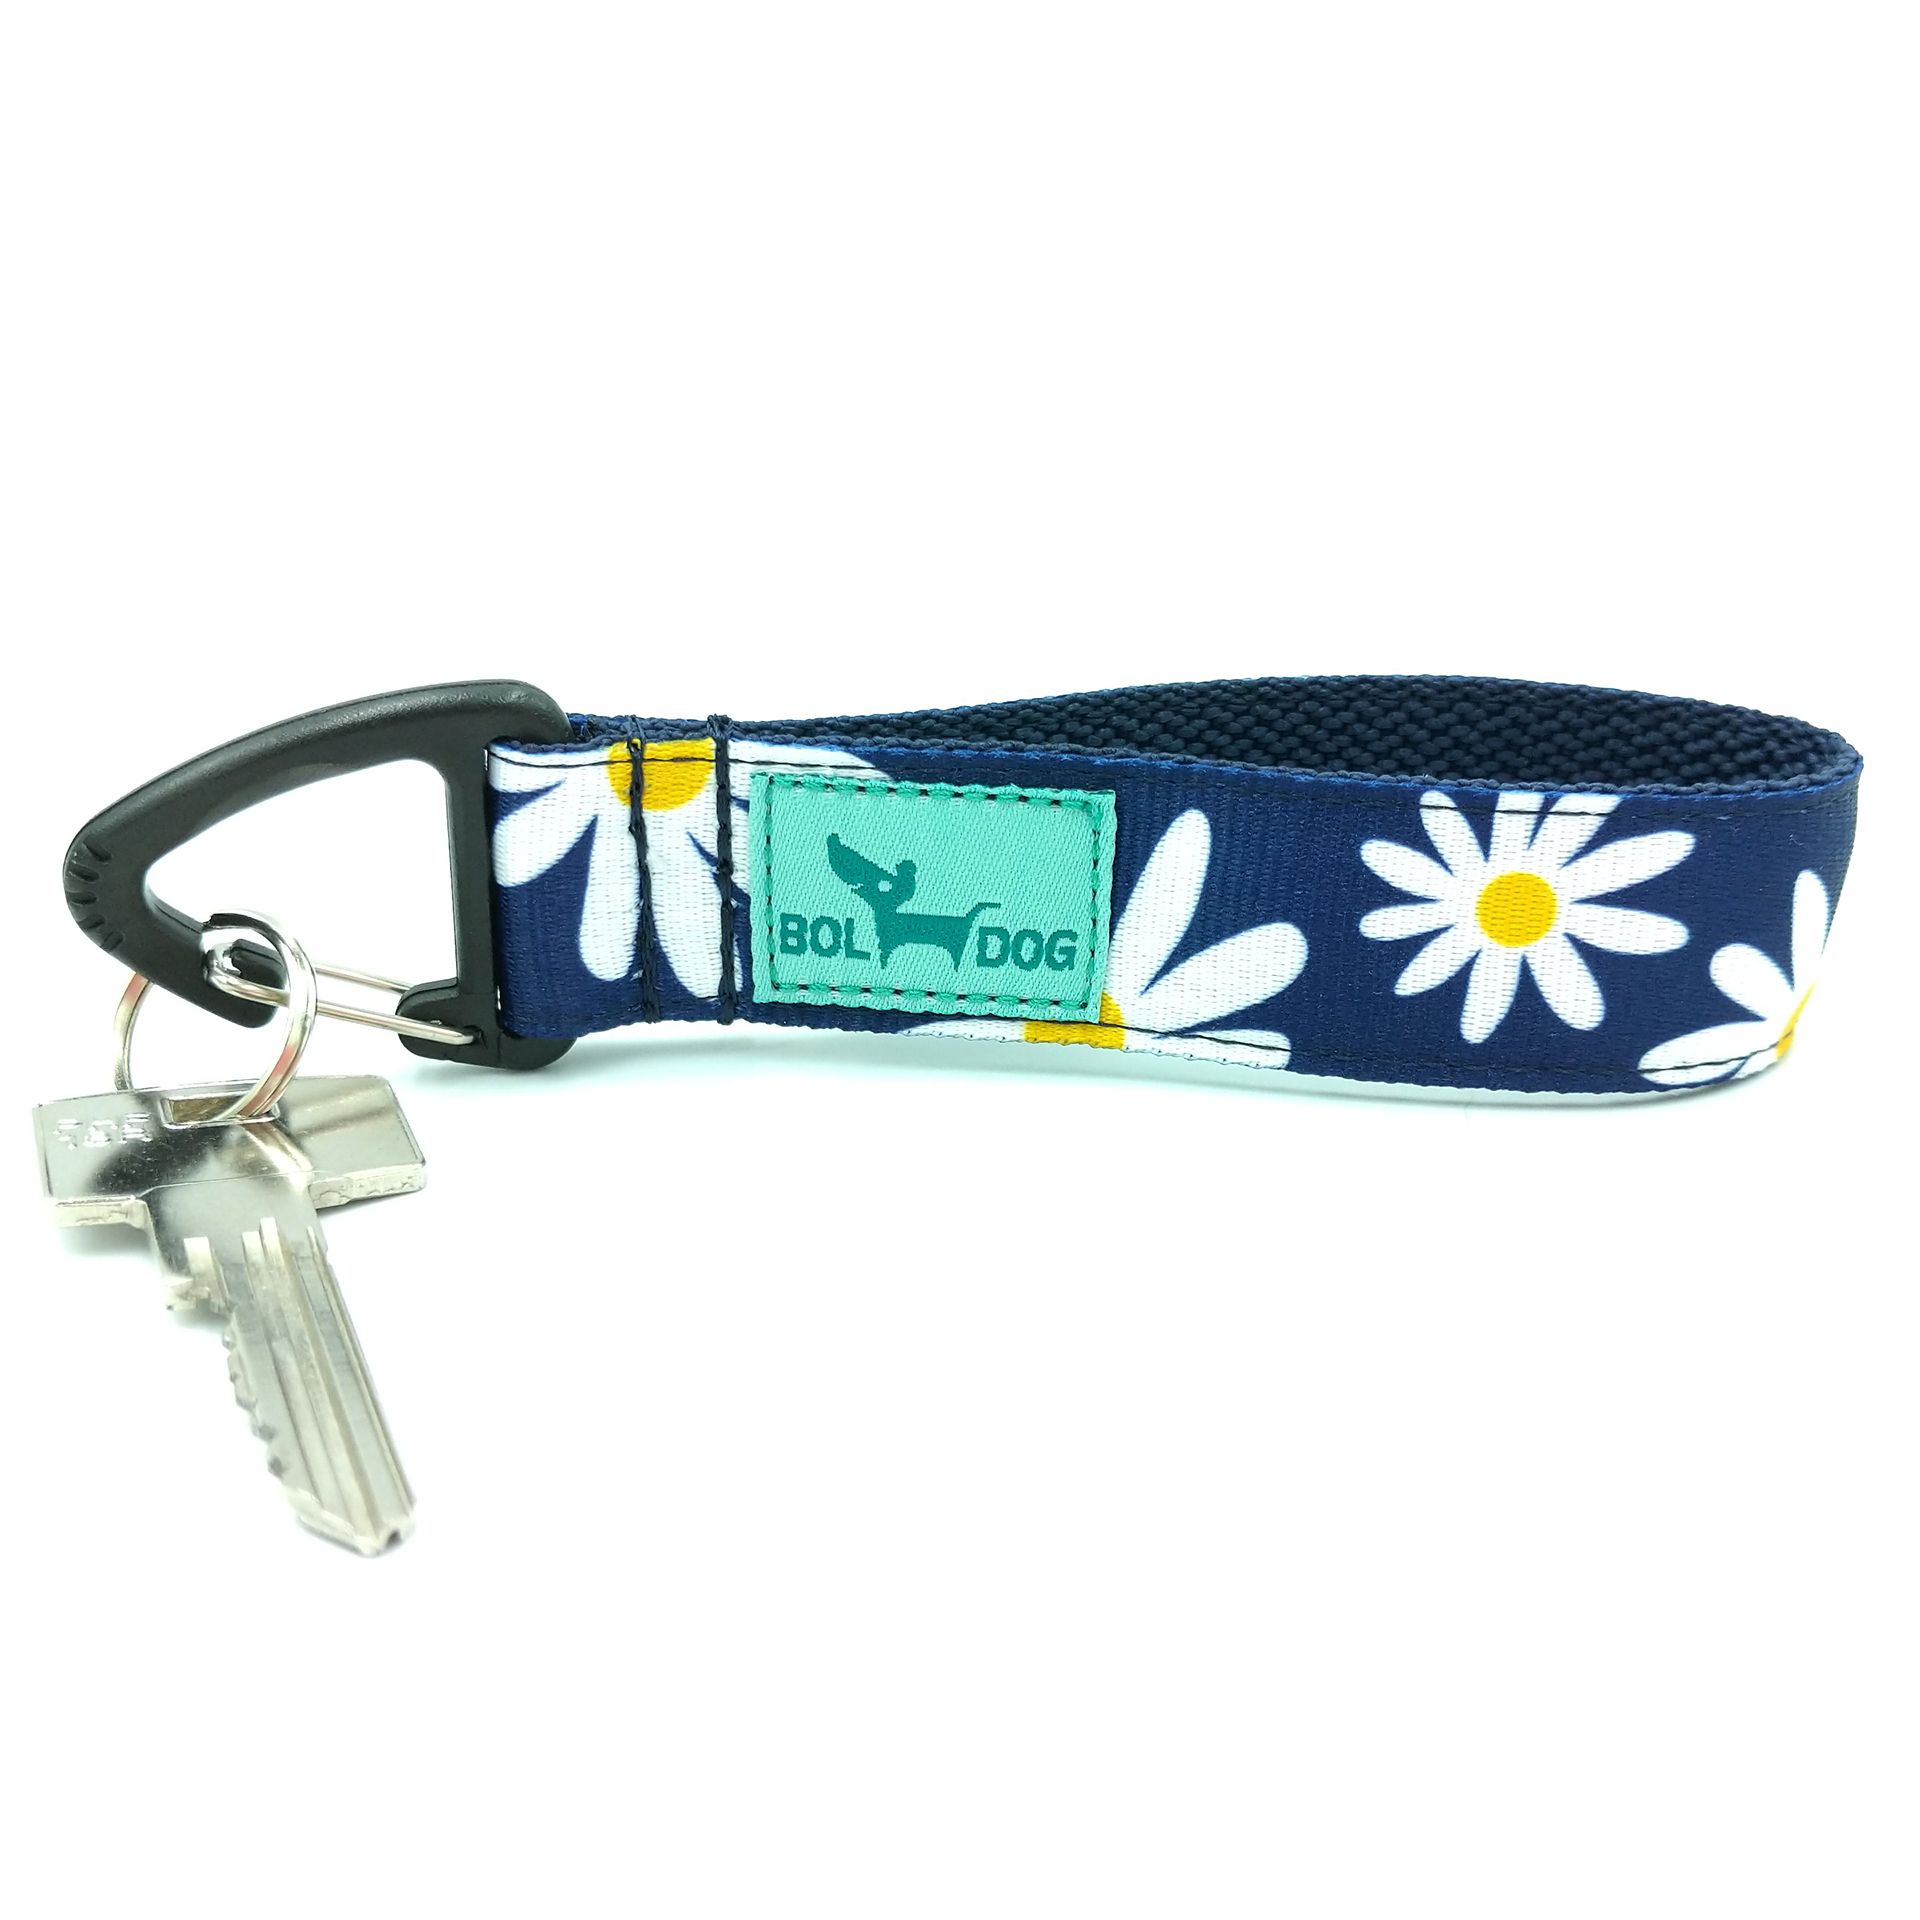 Daisy key holder